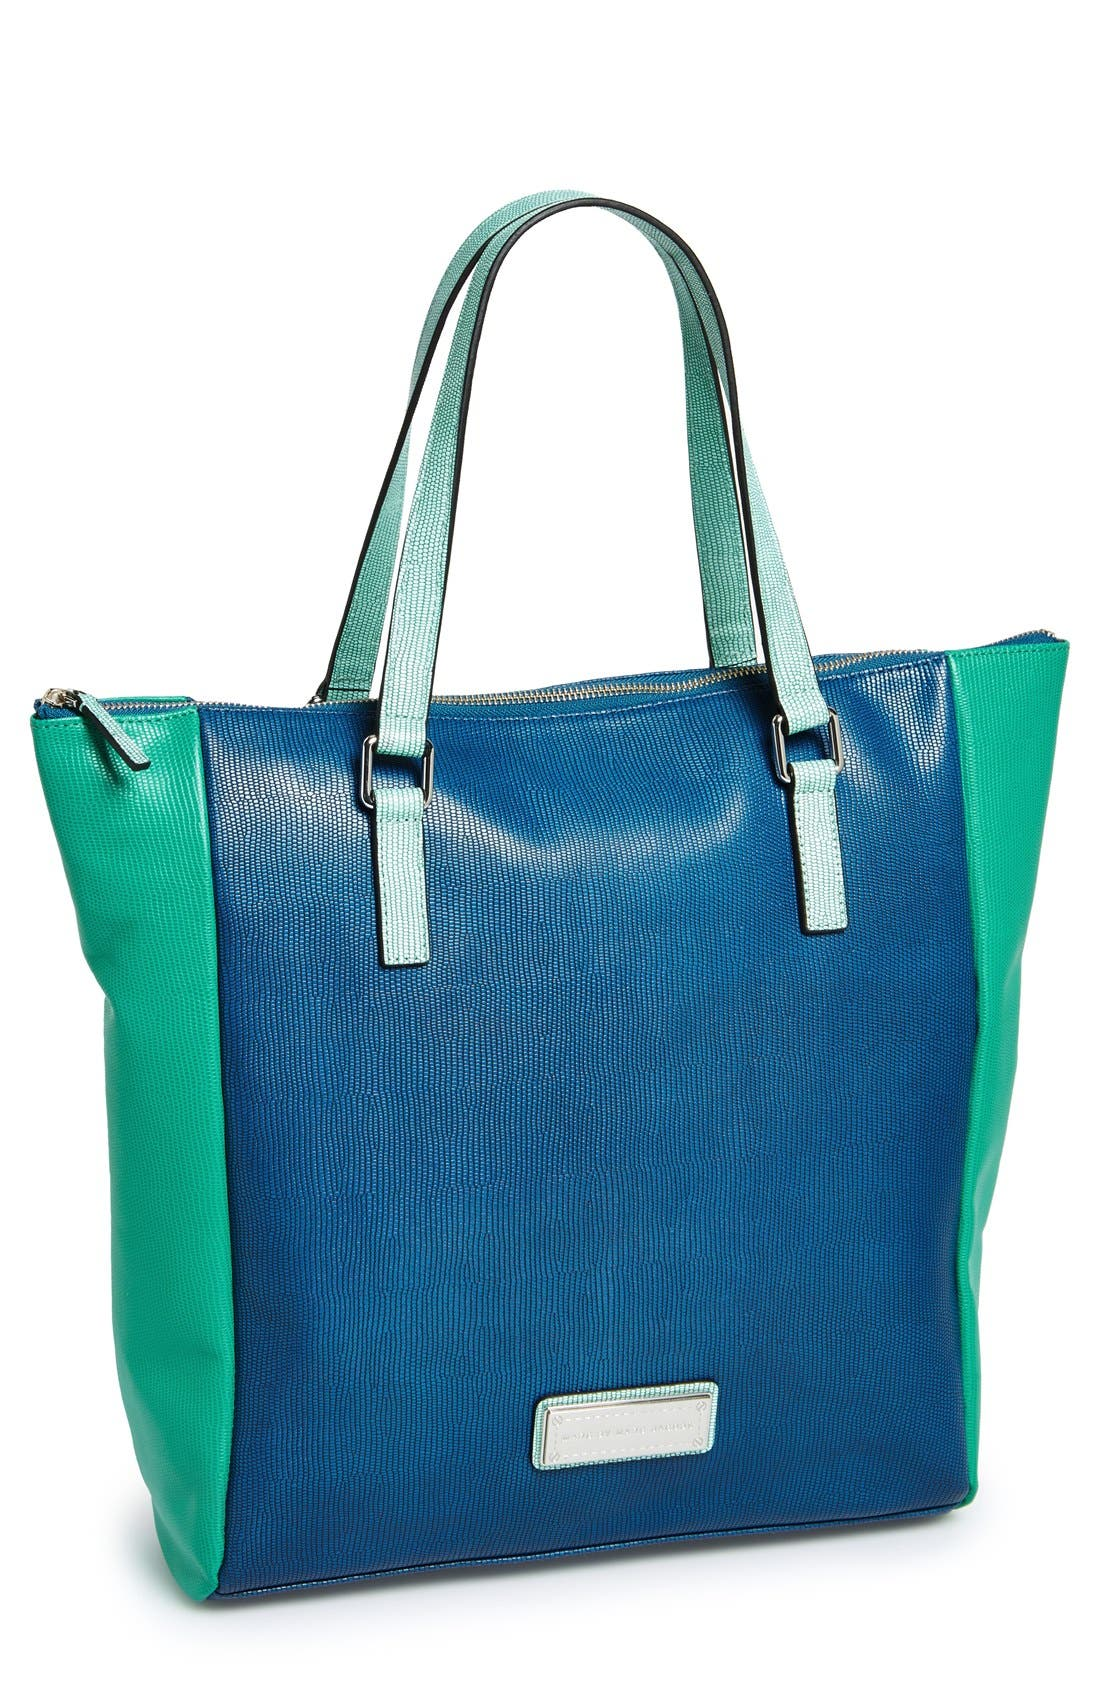 Main Image - MARC BY MARC JACOBS 'Take Me' Leather Tote